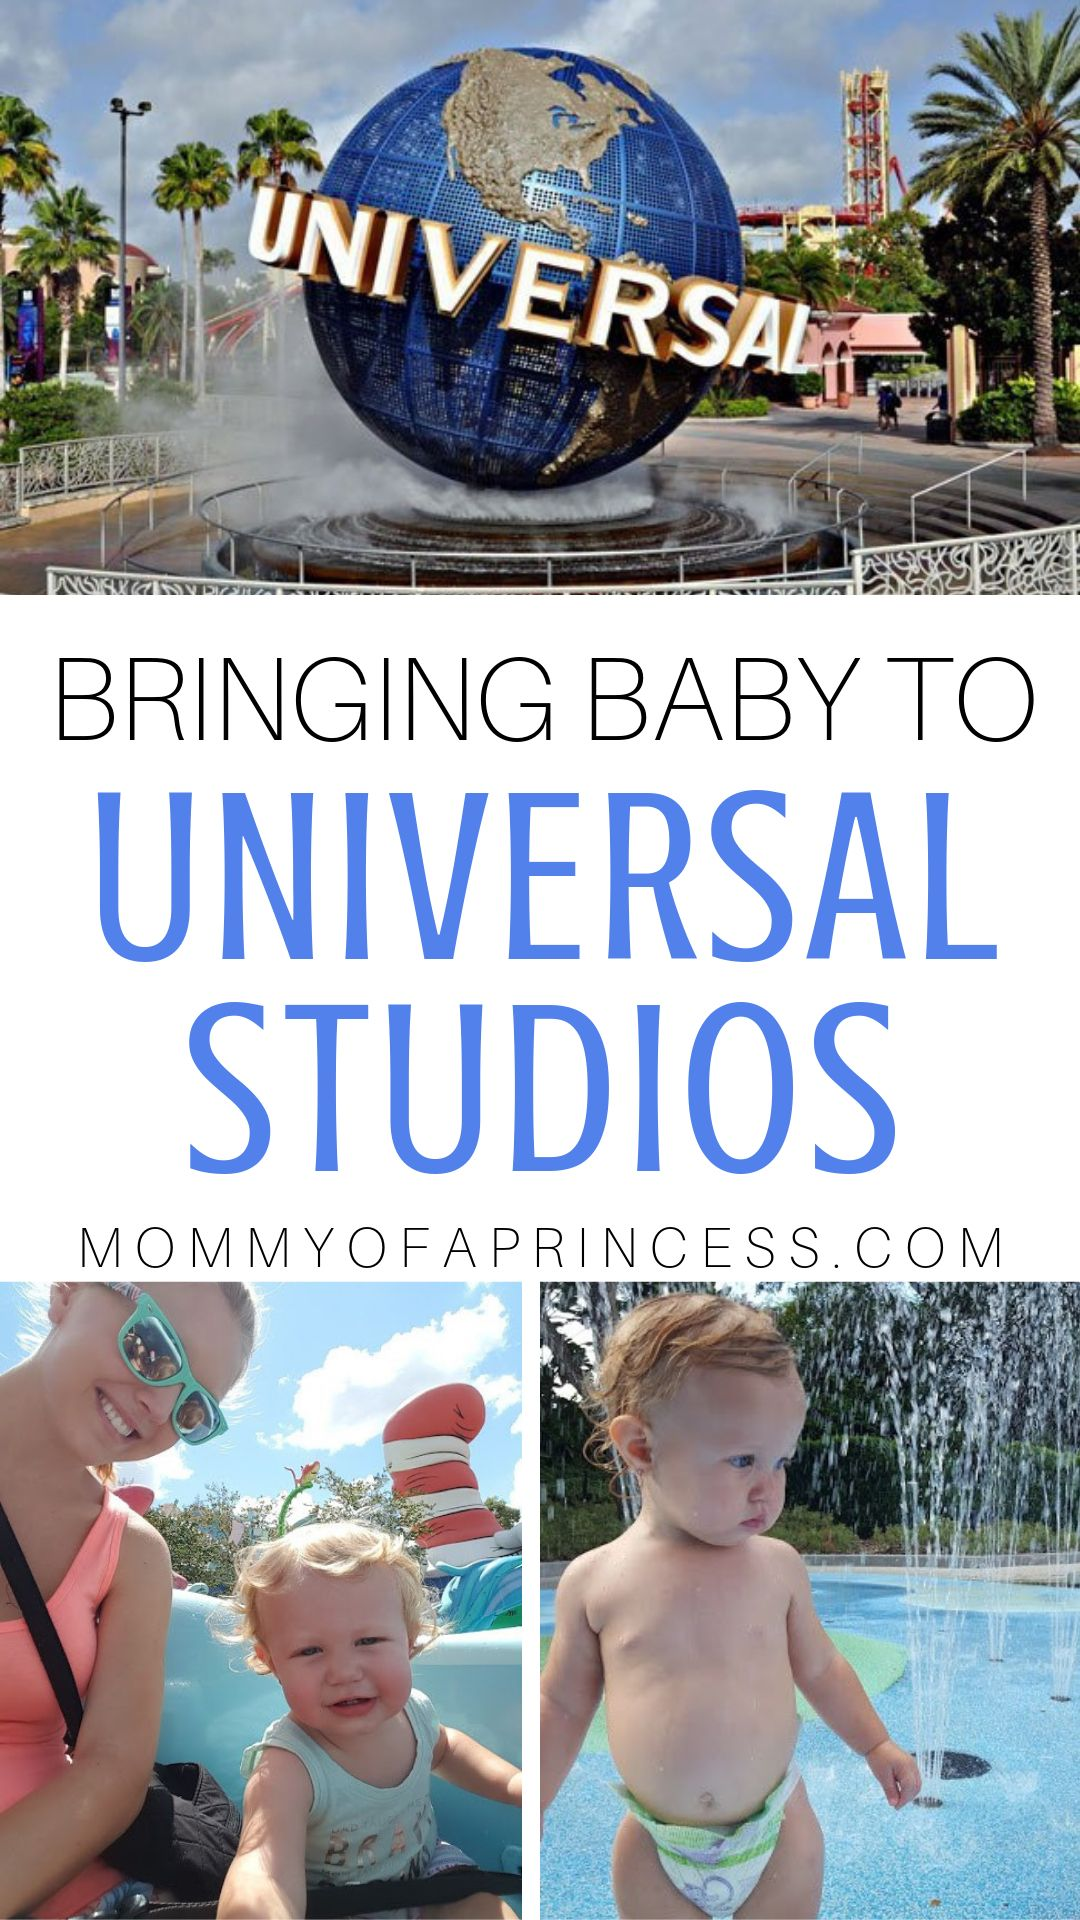 Your Guide To Universal Orlando For Toddlers Babies Universal Studios Orlando Rides Universal Vacation Disney Universal Studios